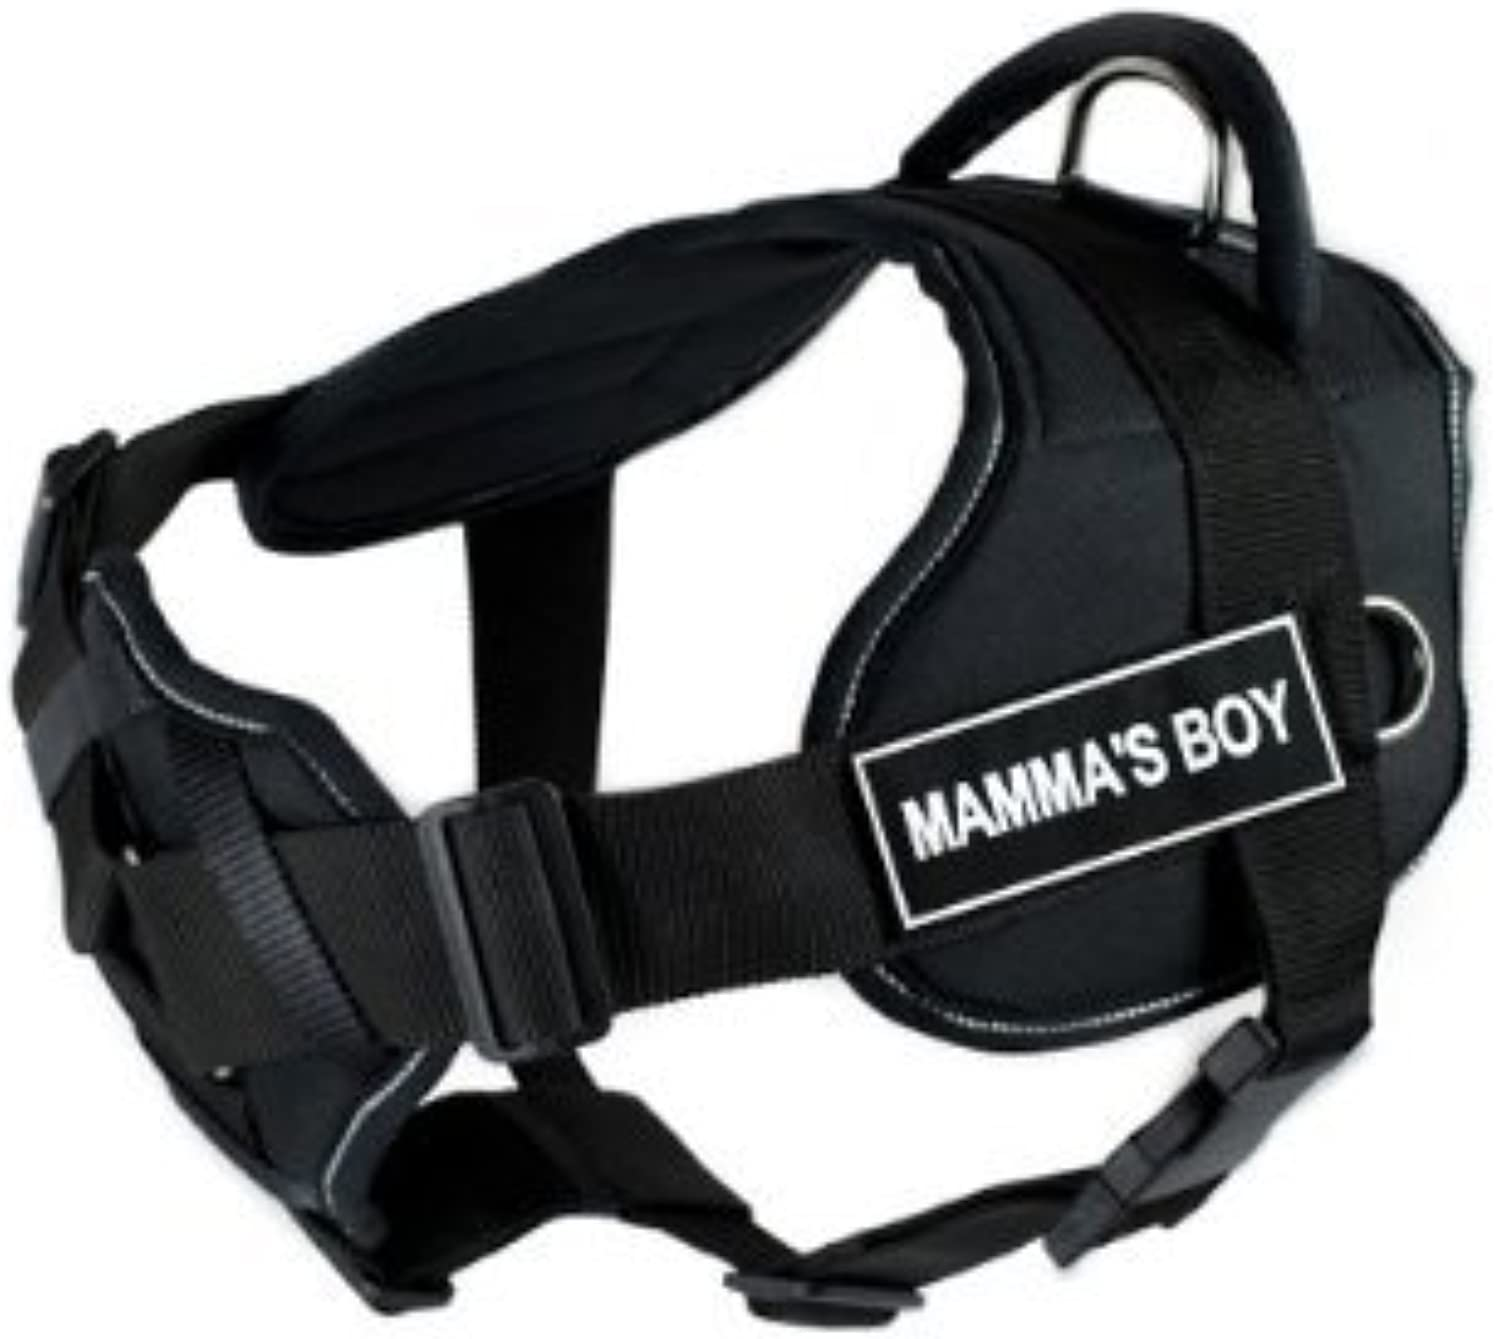 Dean & Tyler New DT FUN Dog Harness With Padded Chest Piece With 3 Straps, Reflective Trim  Size  Medium (Will Fit  71cm  86cm) with  MAMMA'S BOY  Velcro Patches, Black White